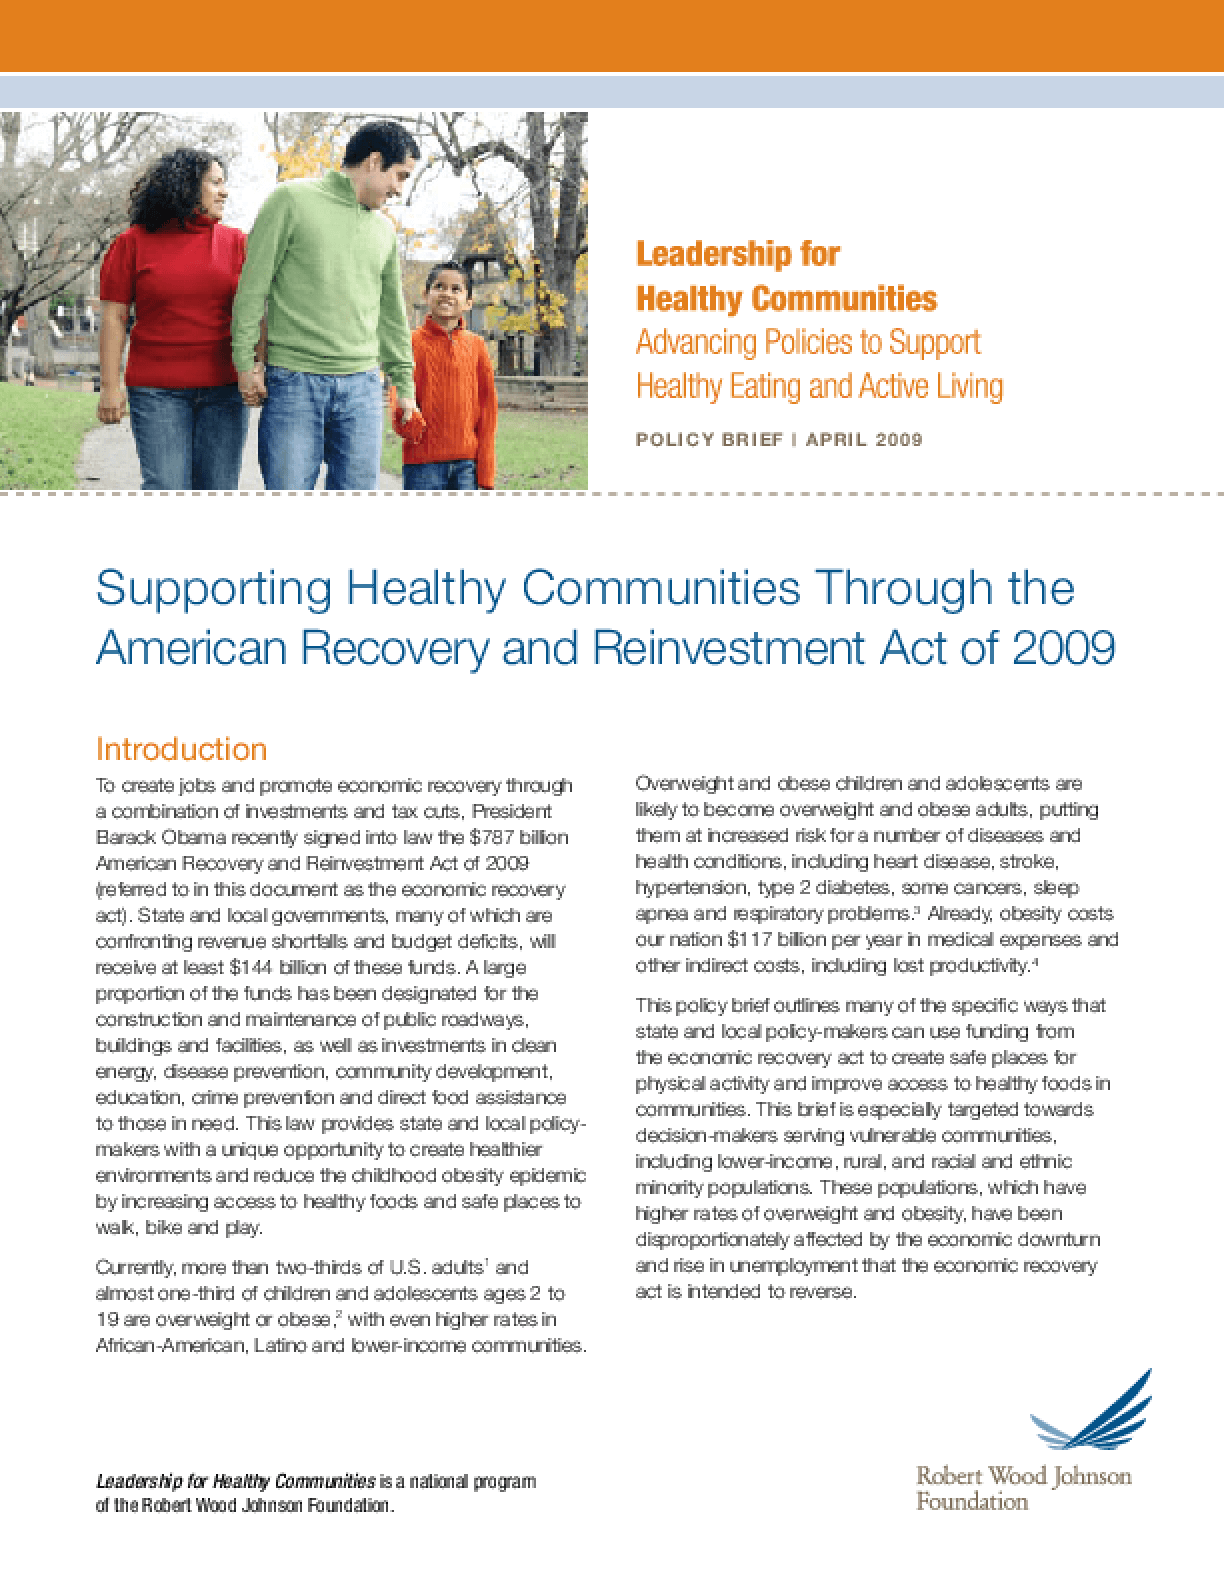 Supporting Healthy Communities Through the American Recovery and Reinvestment Act of 2009